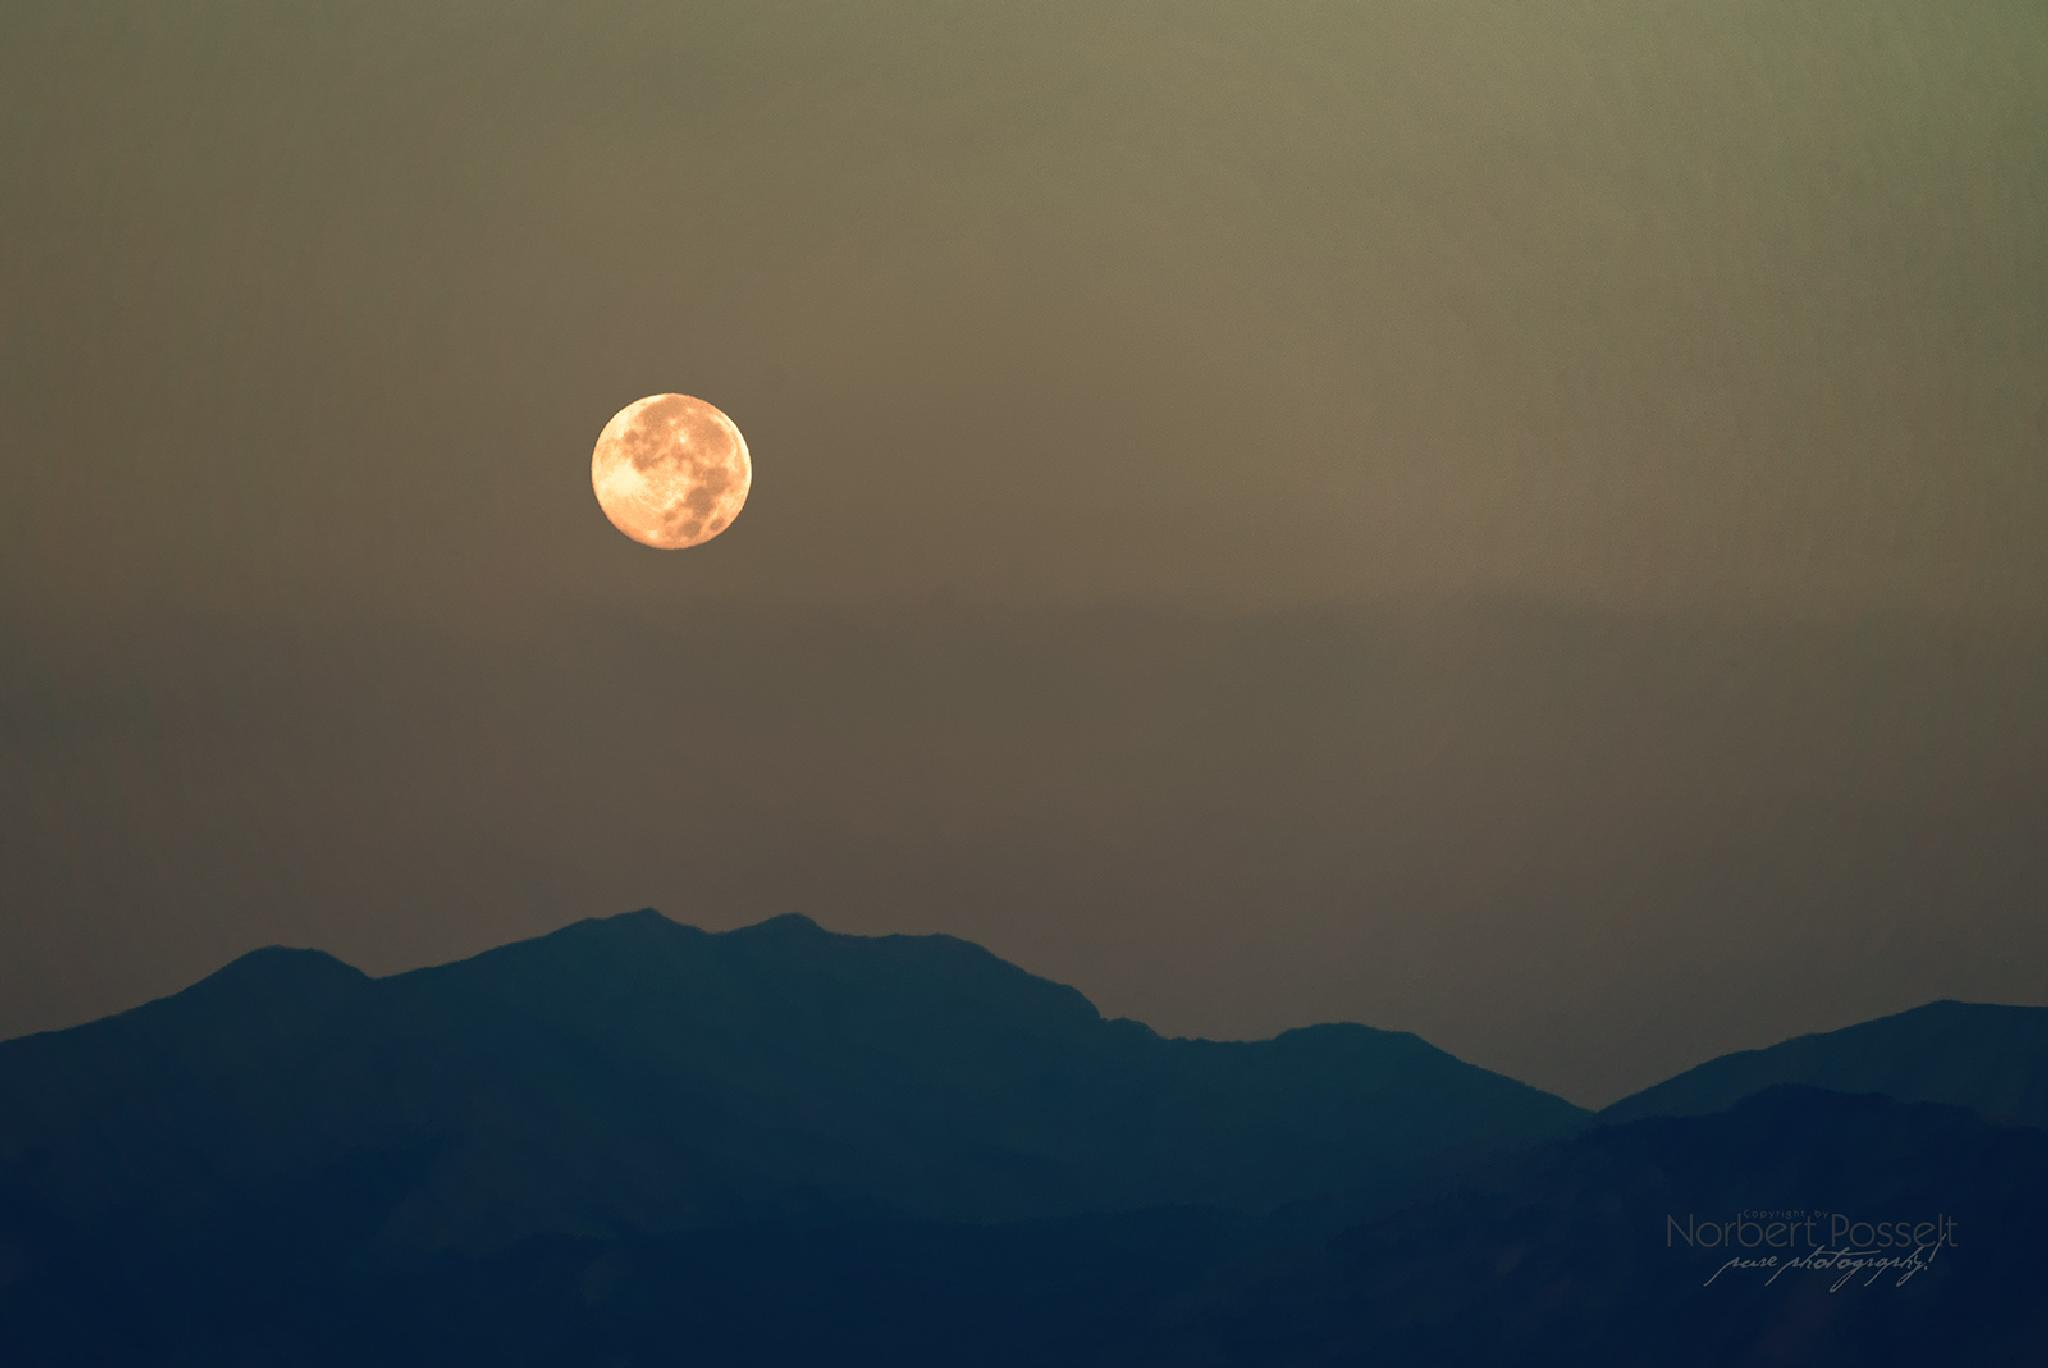 Moonrise by Norbert Posselt